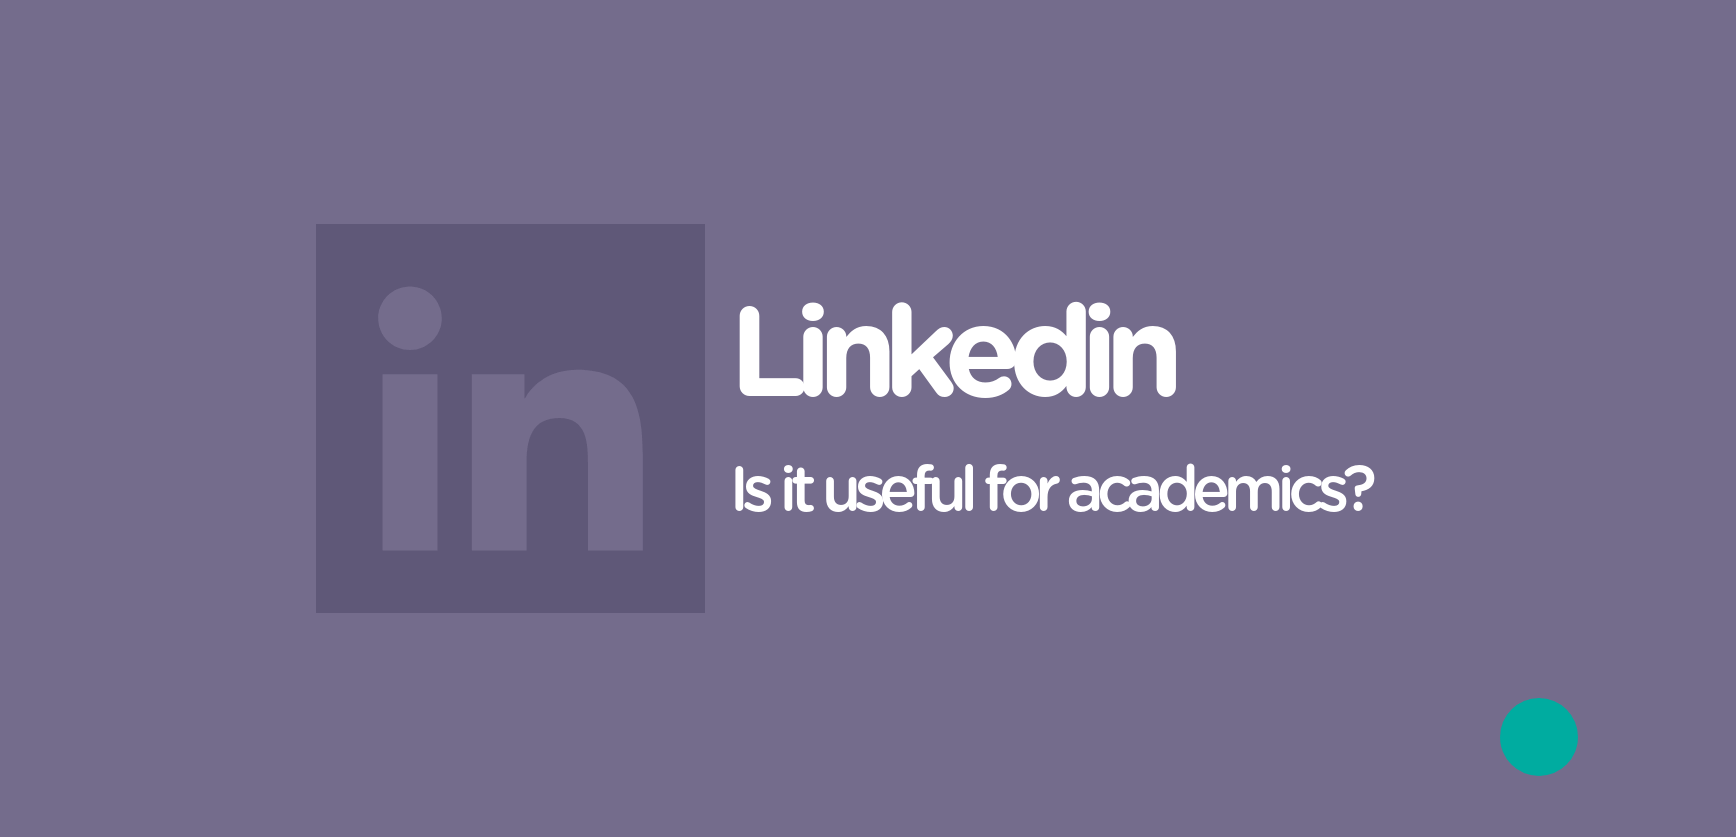 LinkedIn, is it useful for academics?